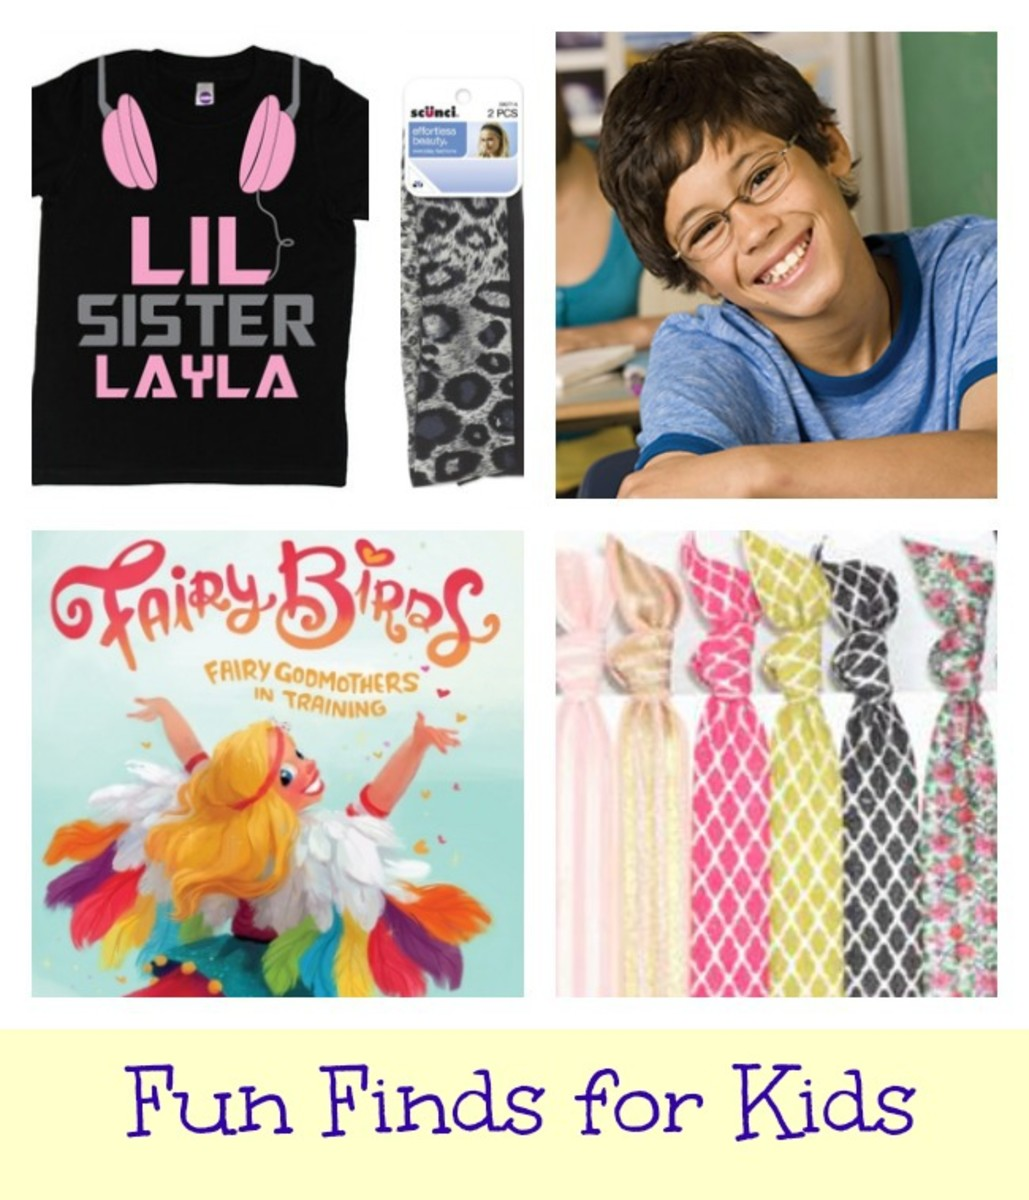 Friday Finds New Looks From Eijffinger: Friday Finds: Fun Finds For Kids